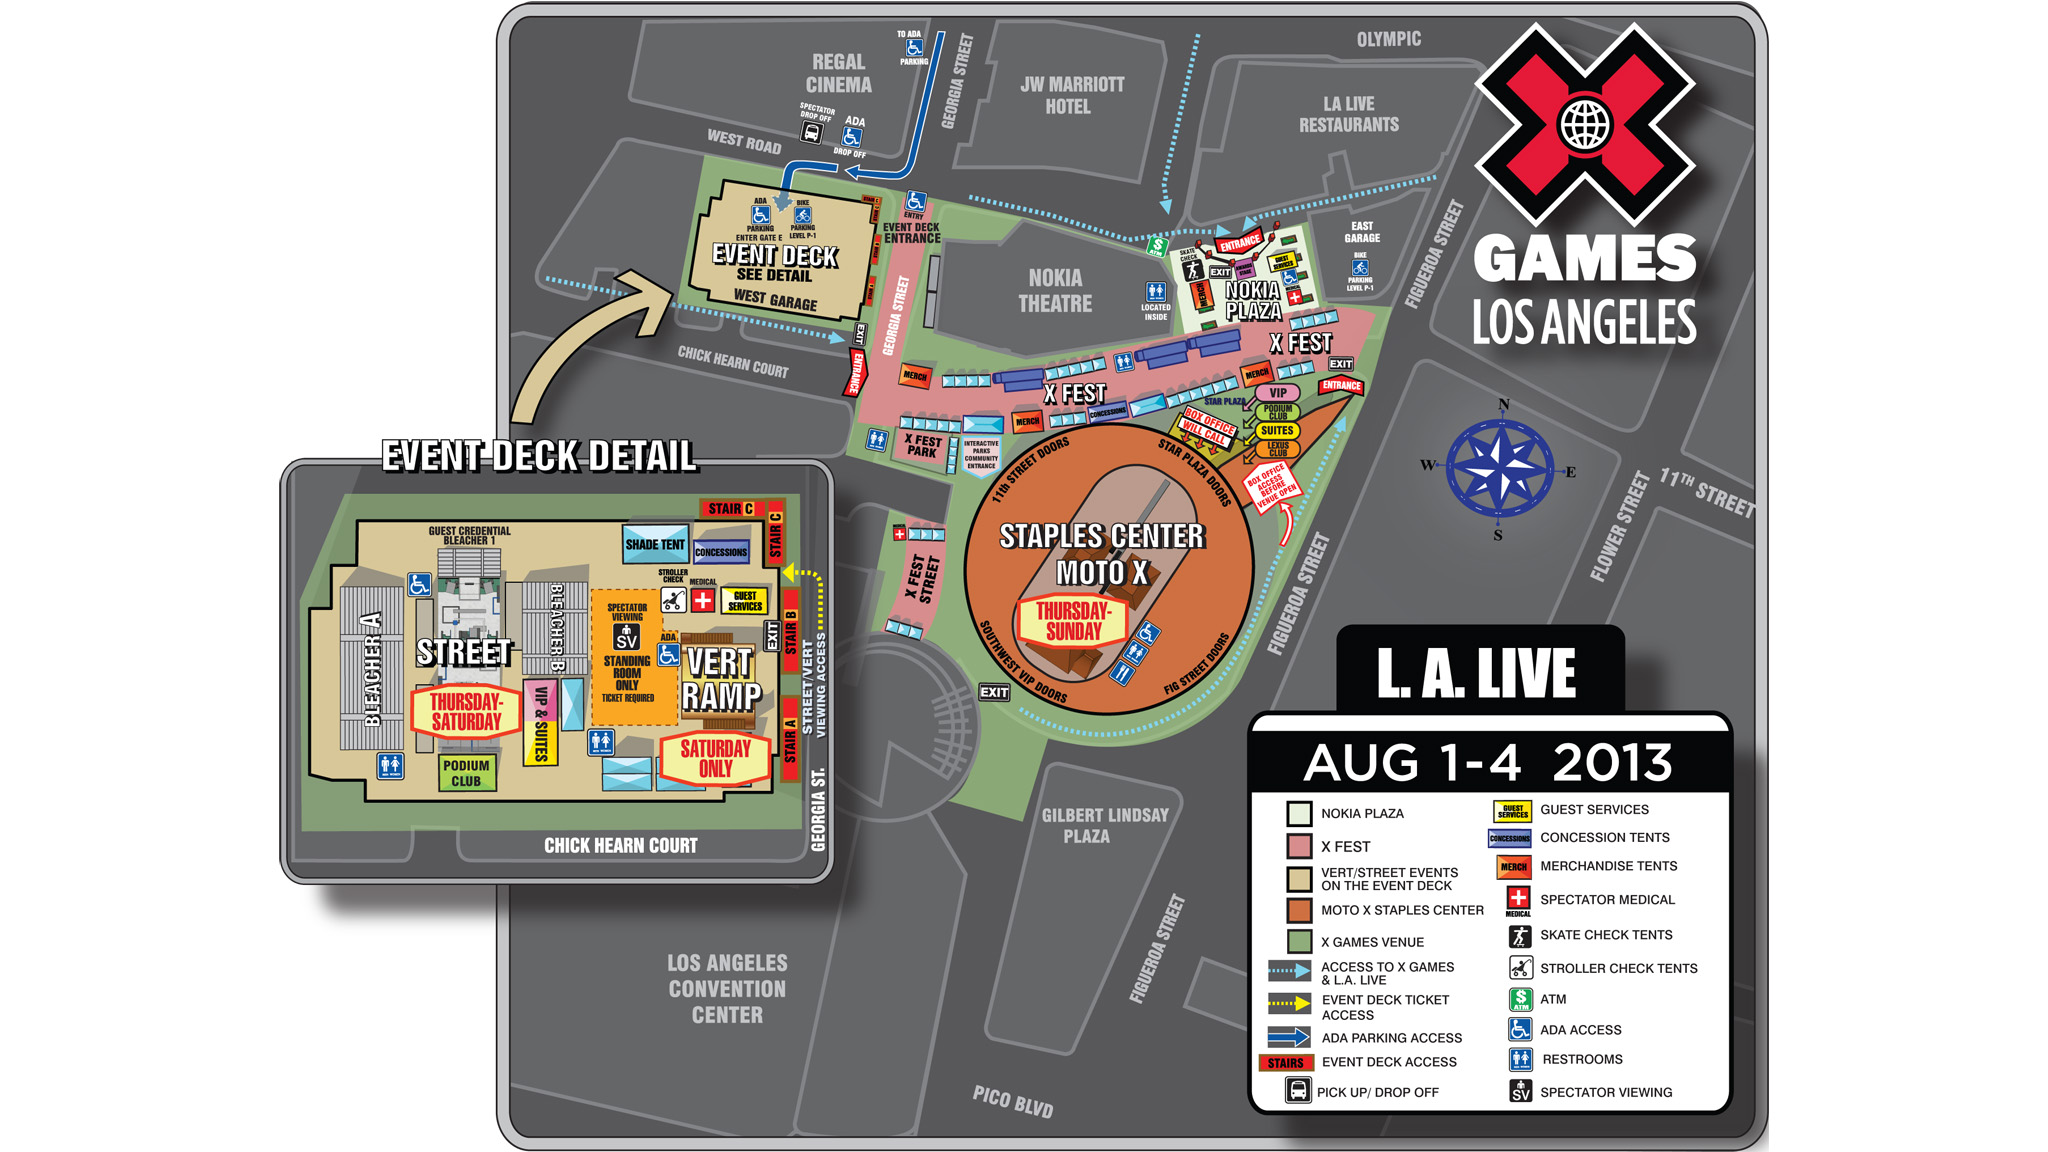 X Games Los Angeles LA Live site map